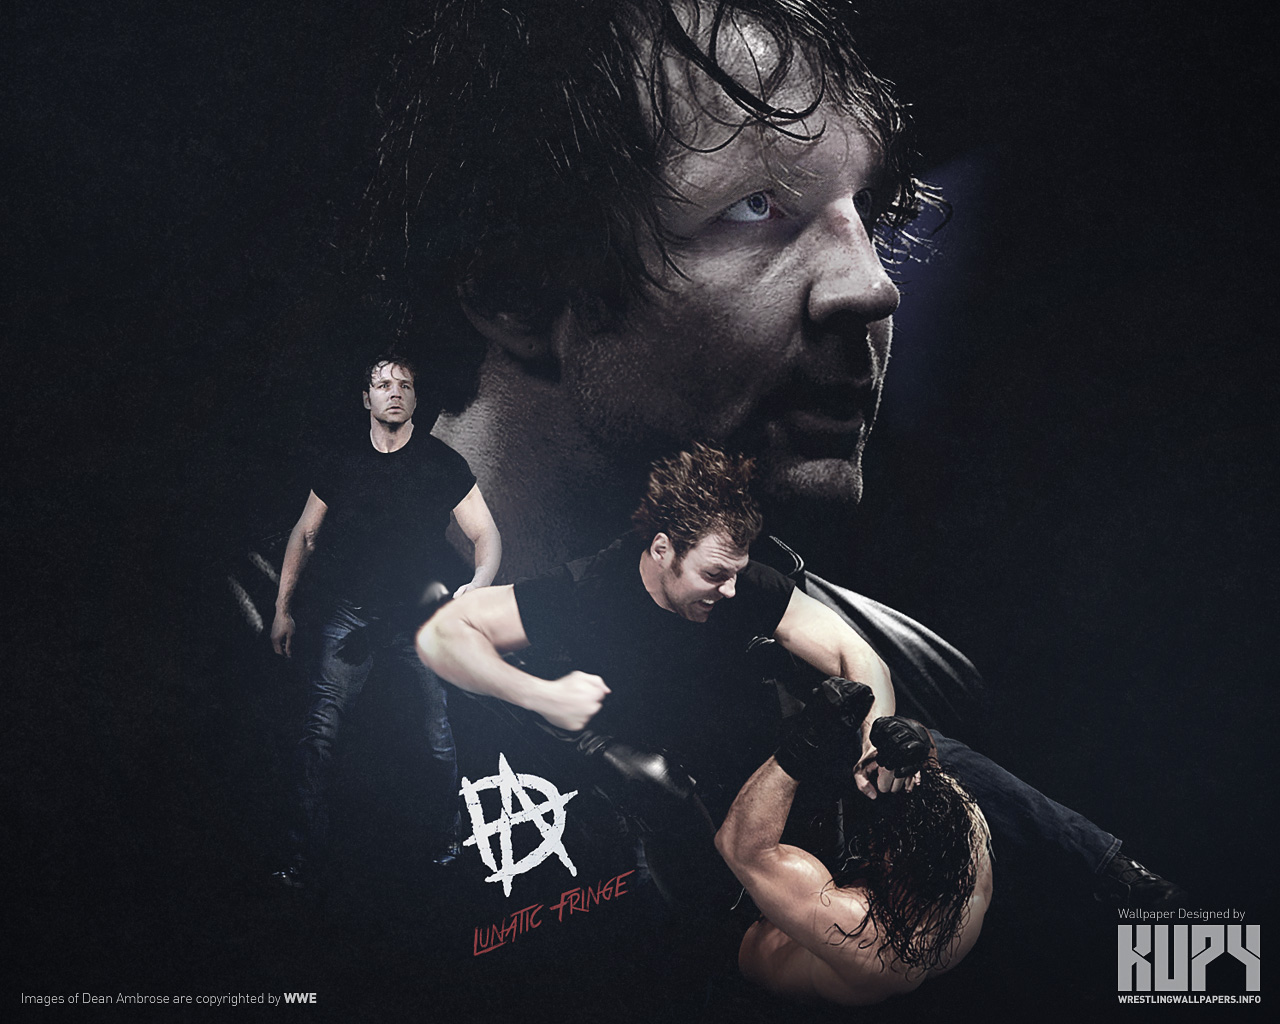 The Shield WWE Images Aftermath Dean Ambrose HD Wallpaper And Background Photos